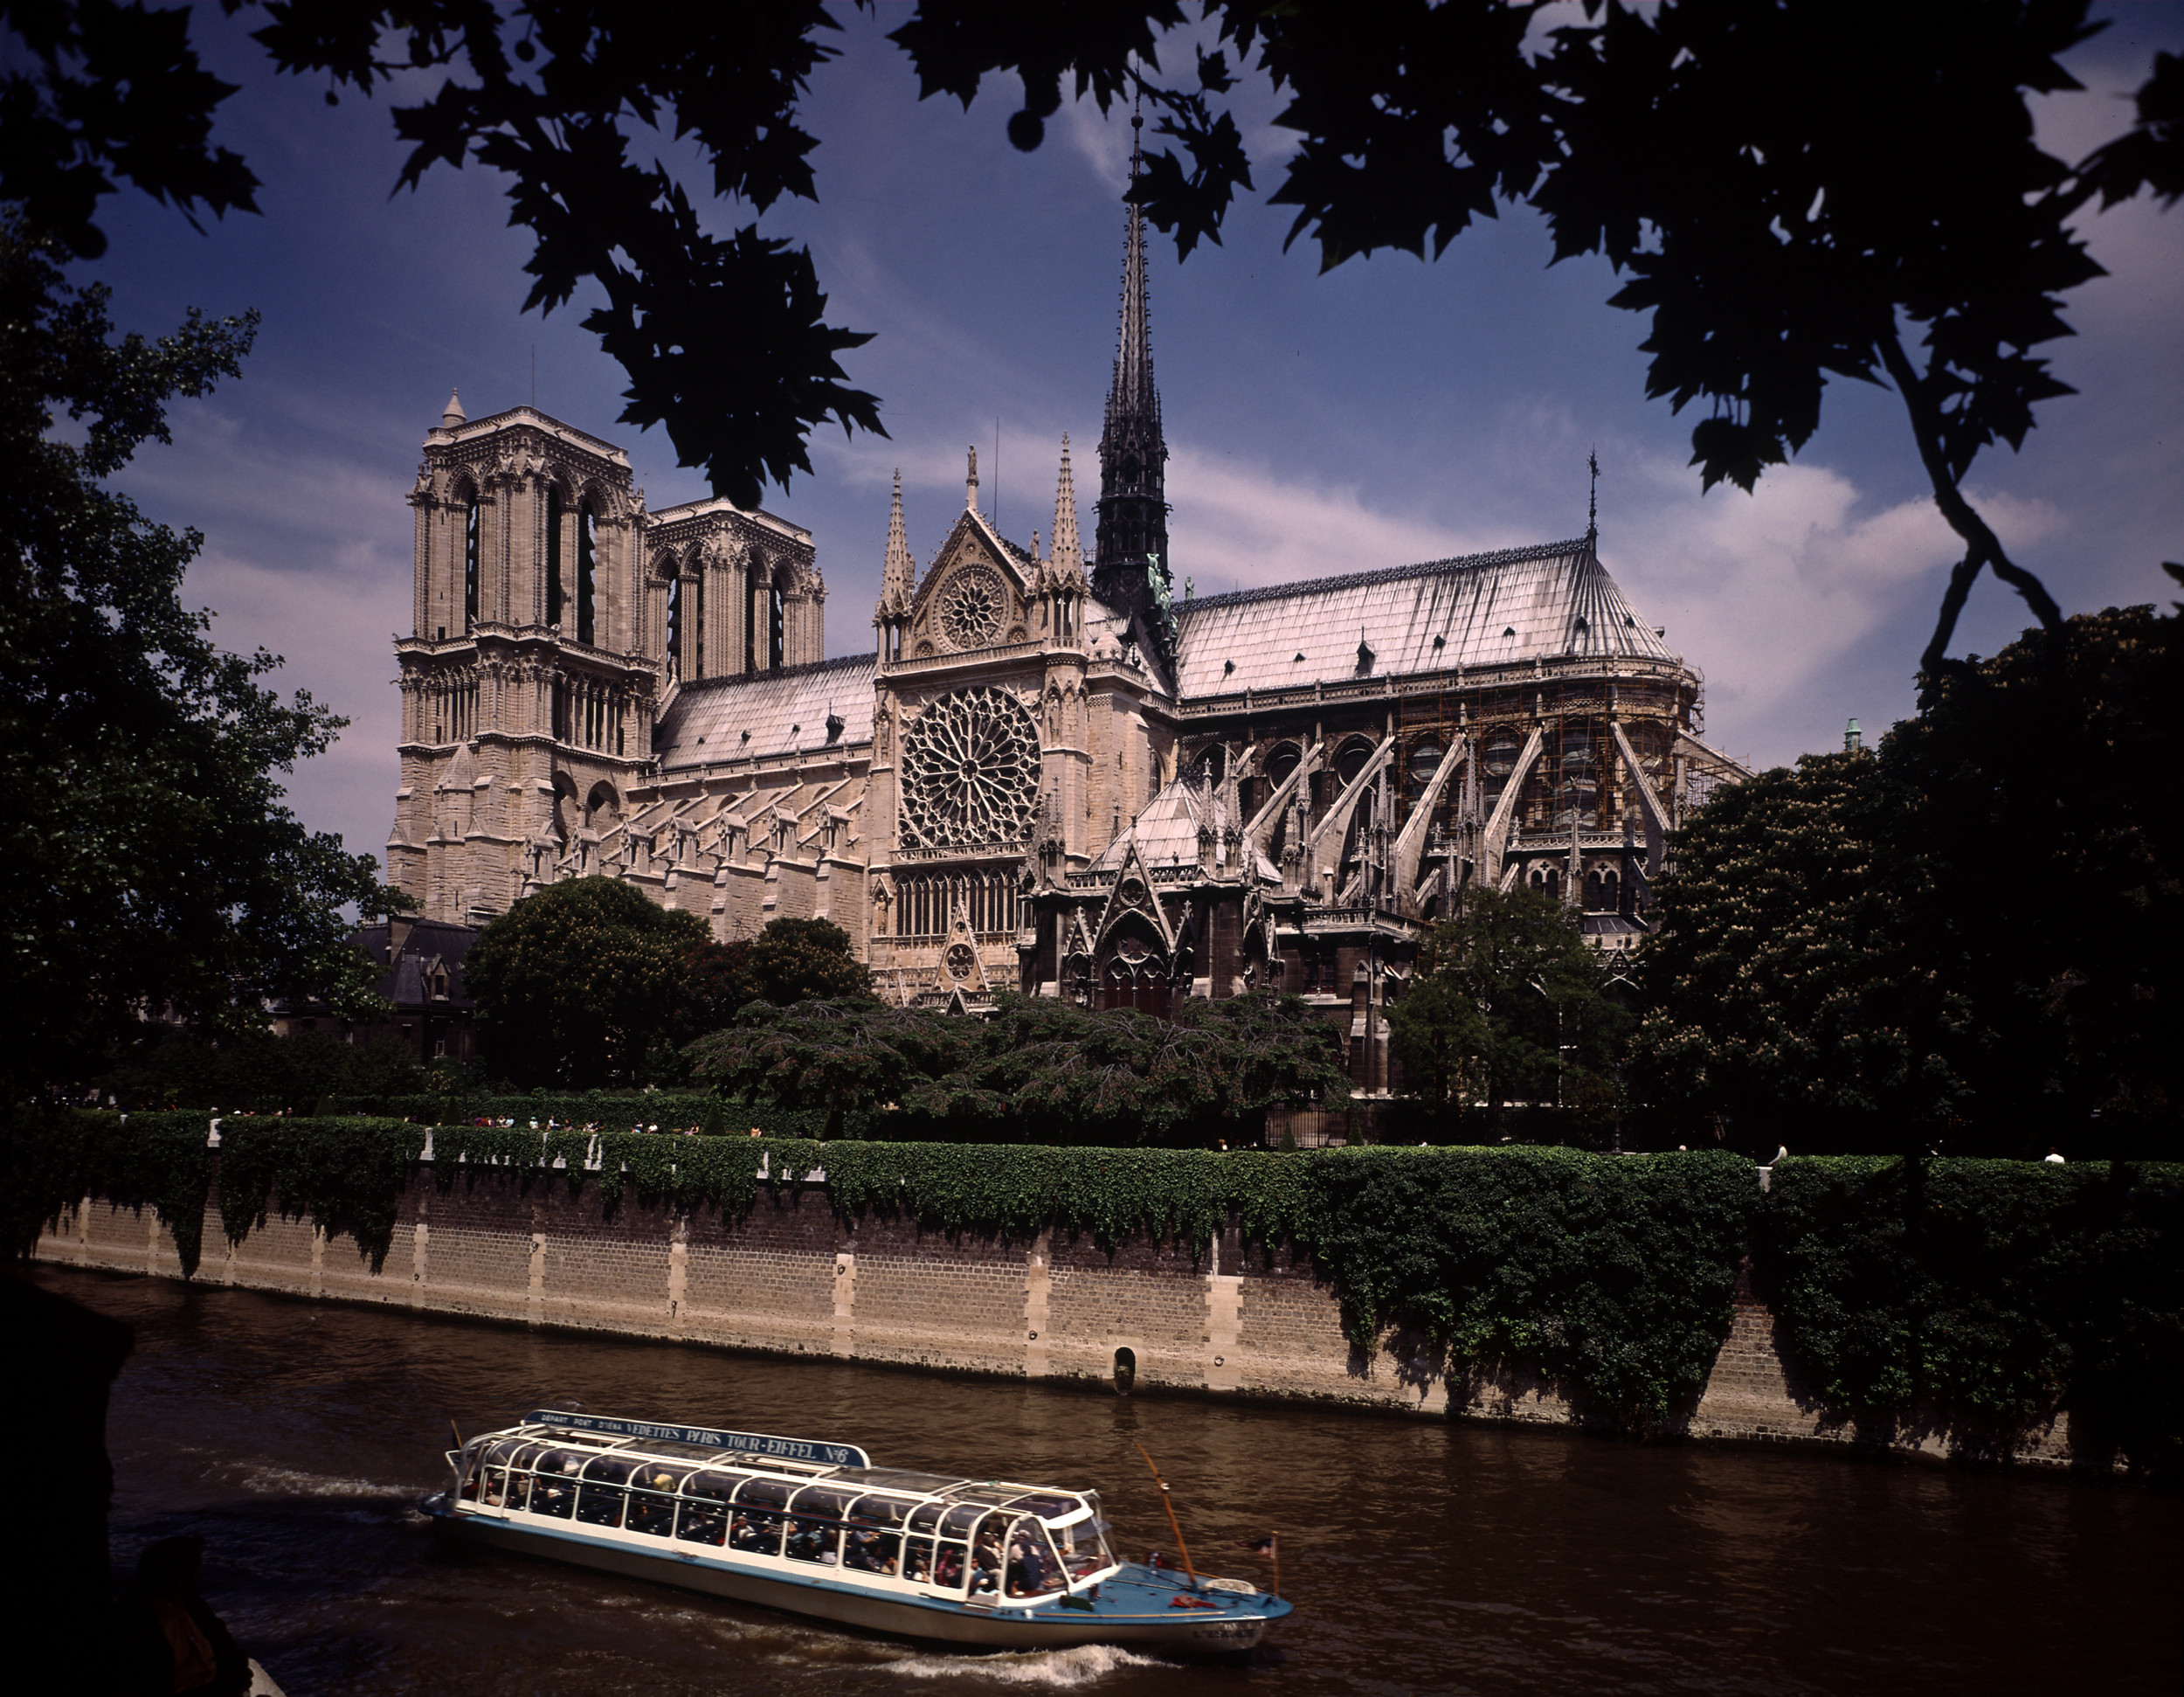 FRANCE - 1970: Notre Dame Cathedral as seen from the Seine with sightseeing boat going by. (Photo by Bill Ray/Life Magazine/The LIFE Picture Collection/Getty Images)